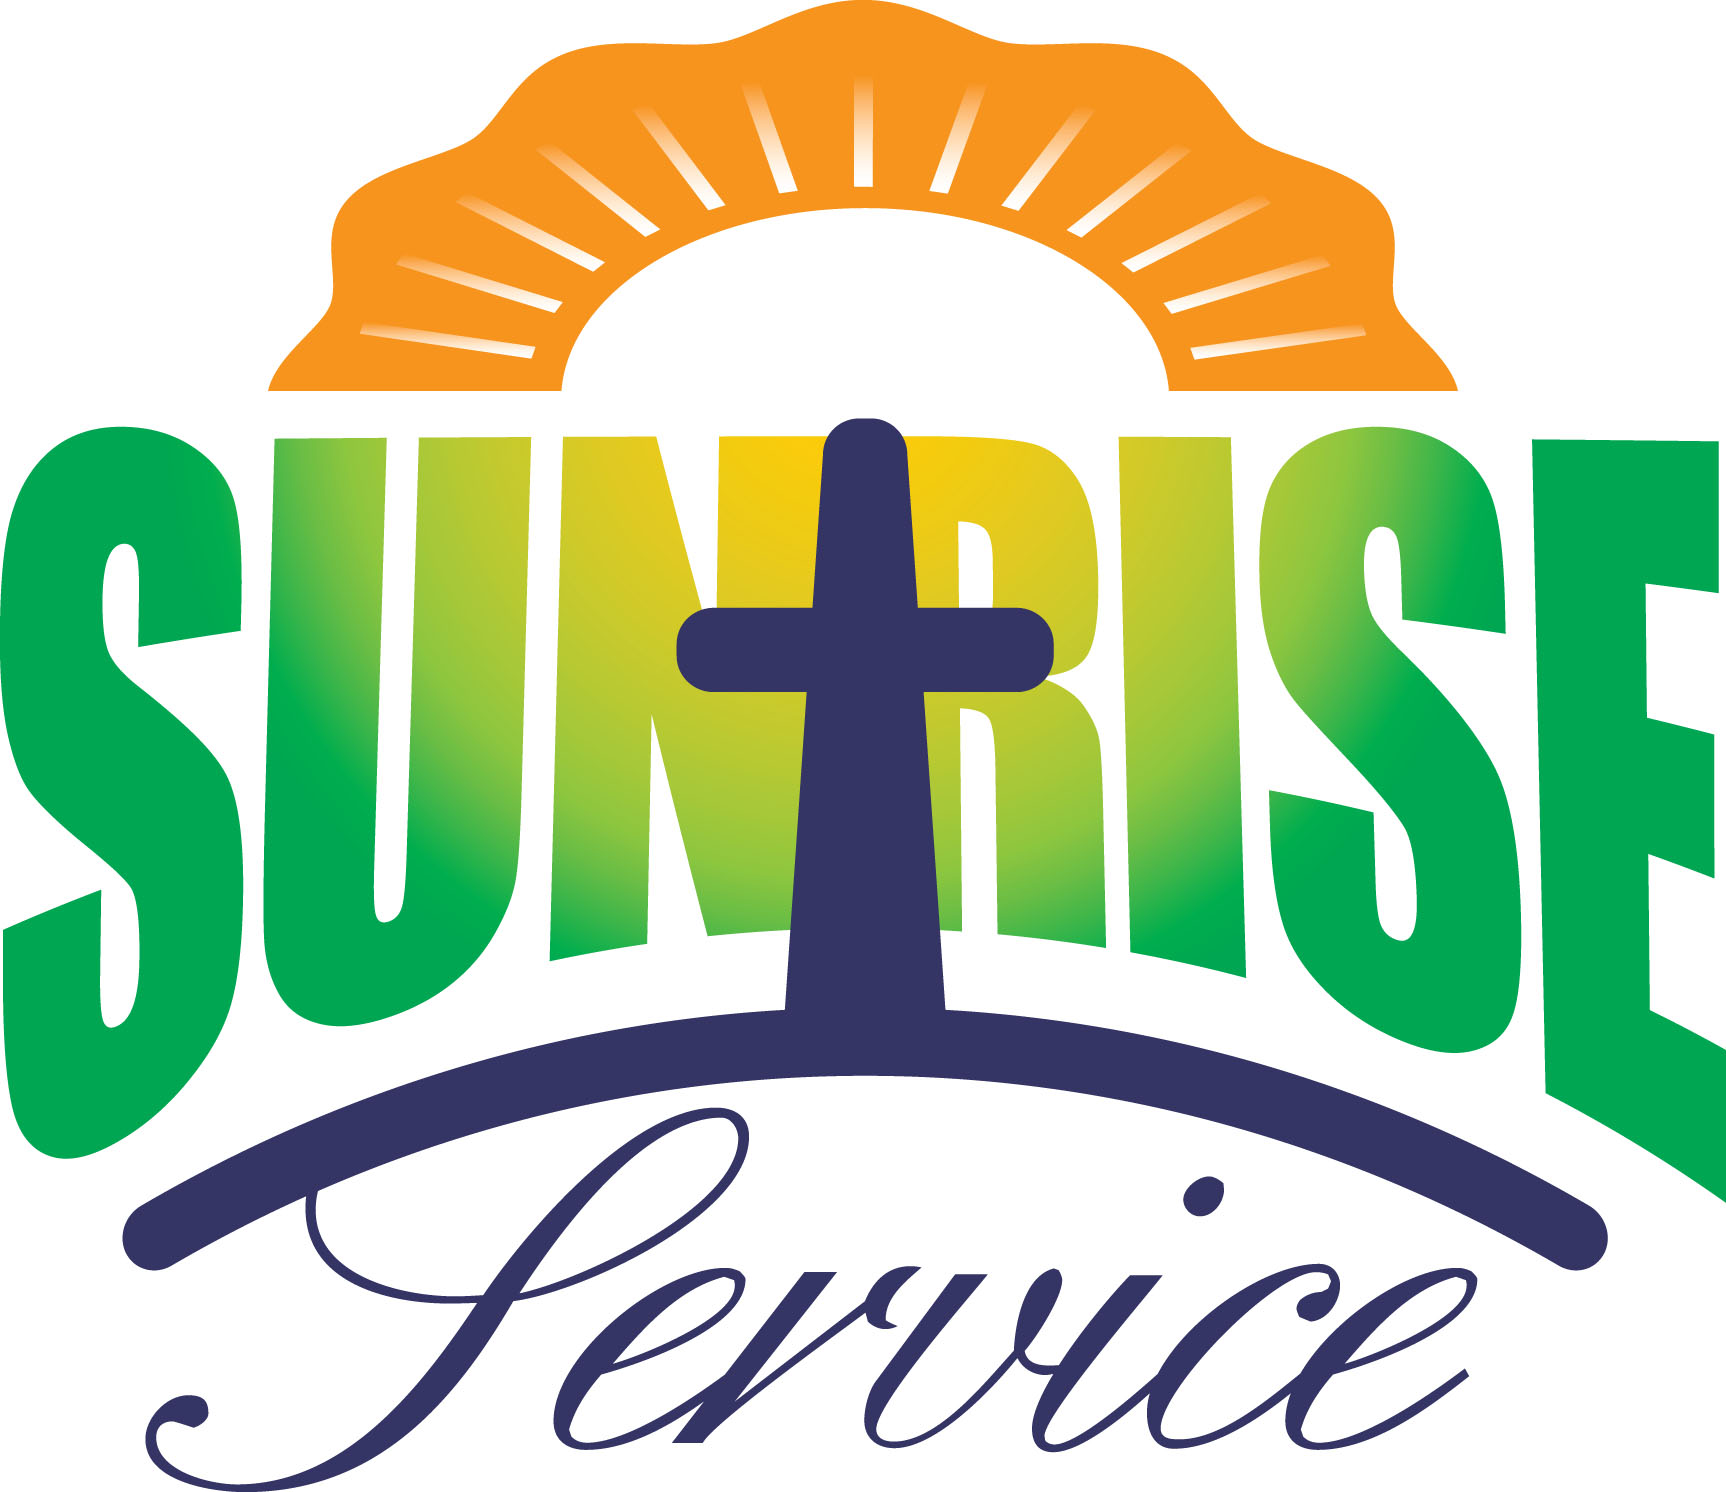 Easter Sunrise Clipart.